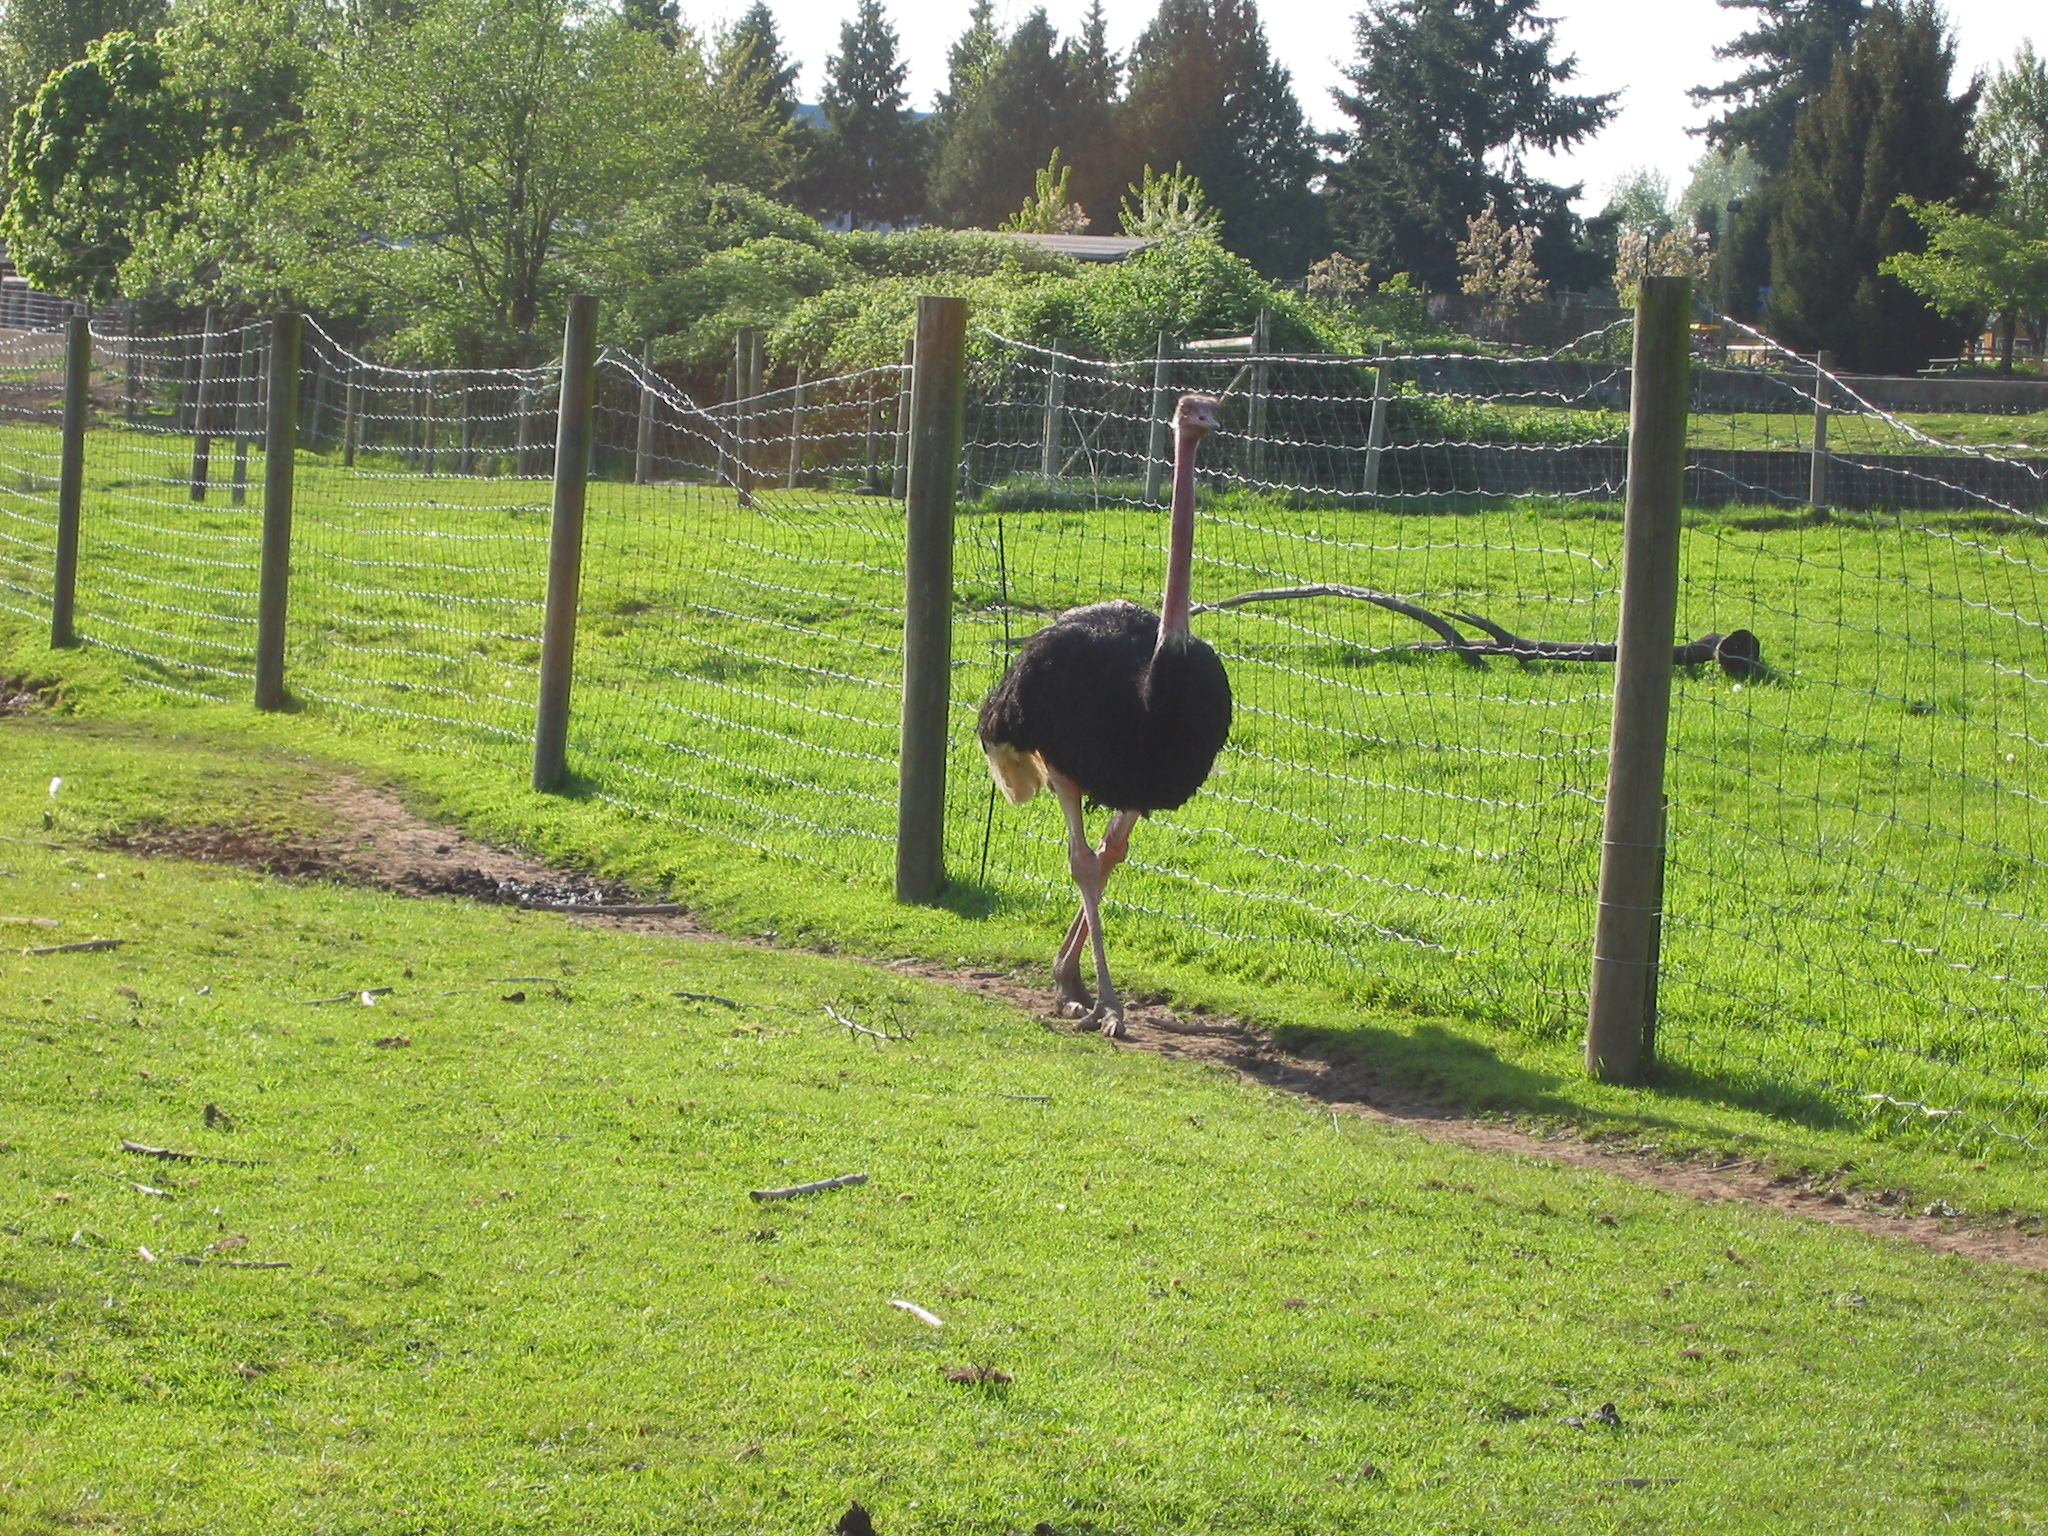 An Ostrich in Greater Vancouver Zoo